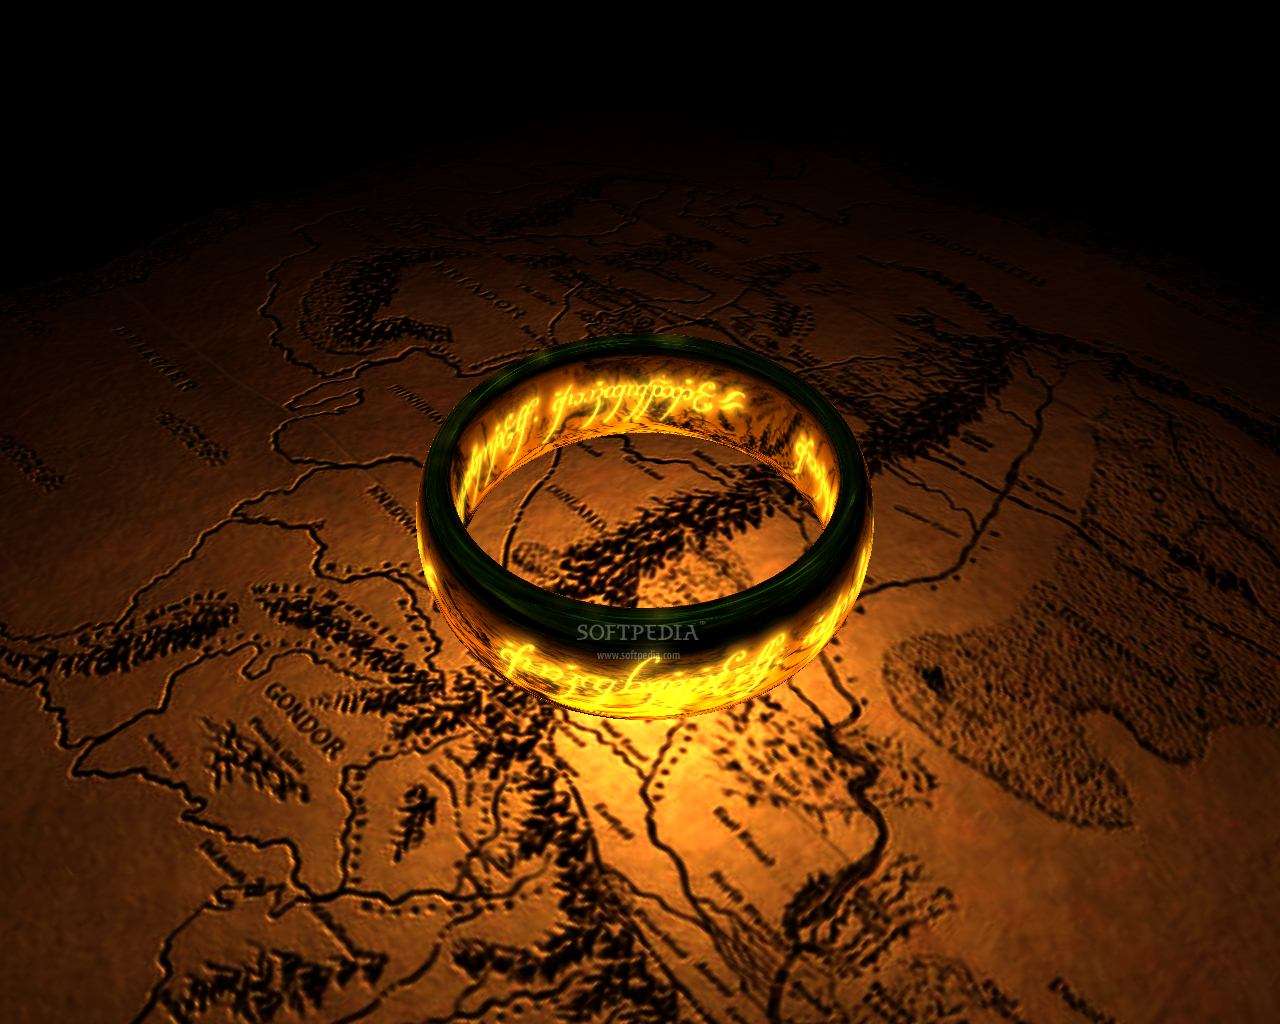 Lord Of The Rings Backgrounds - Wallpaper Cave